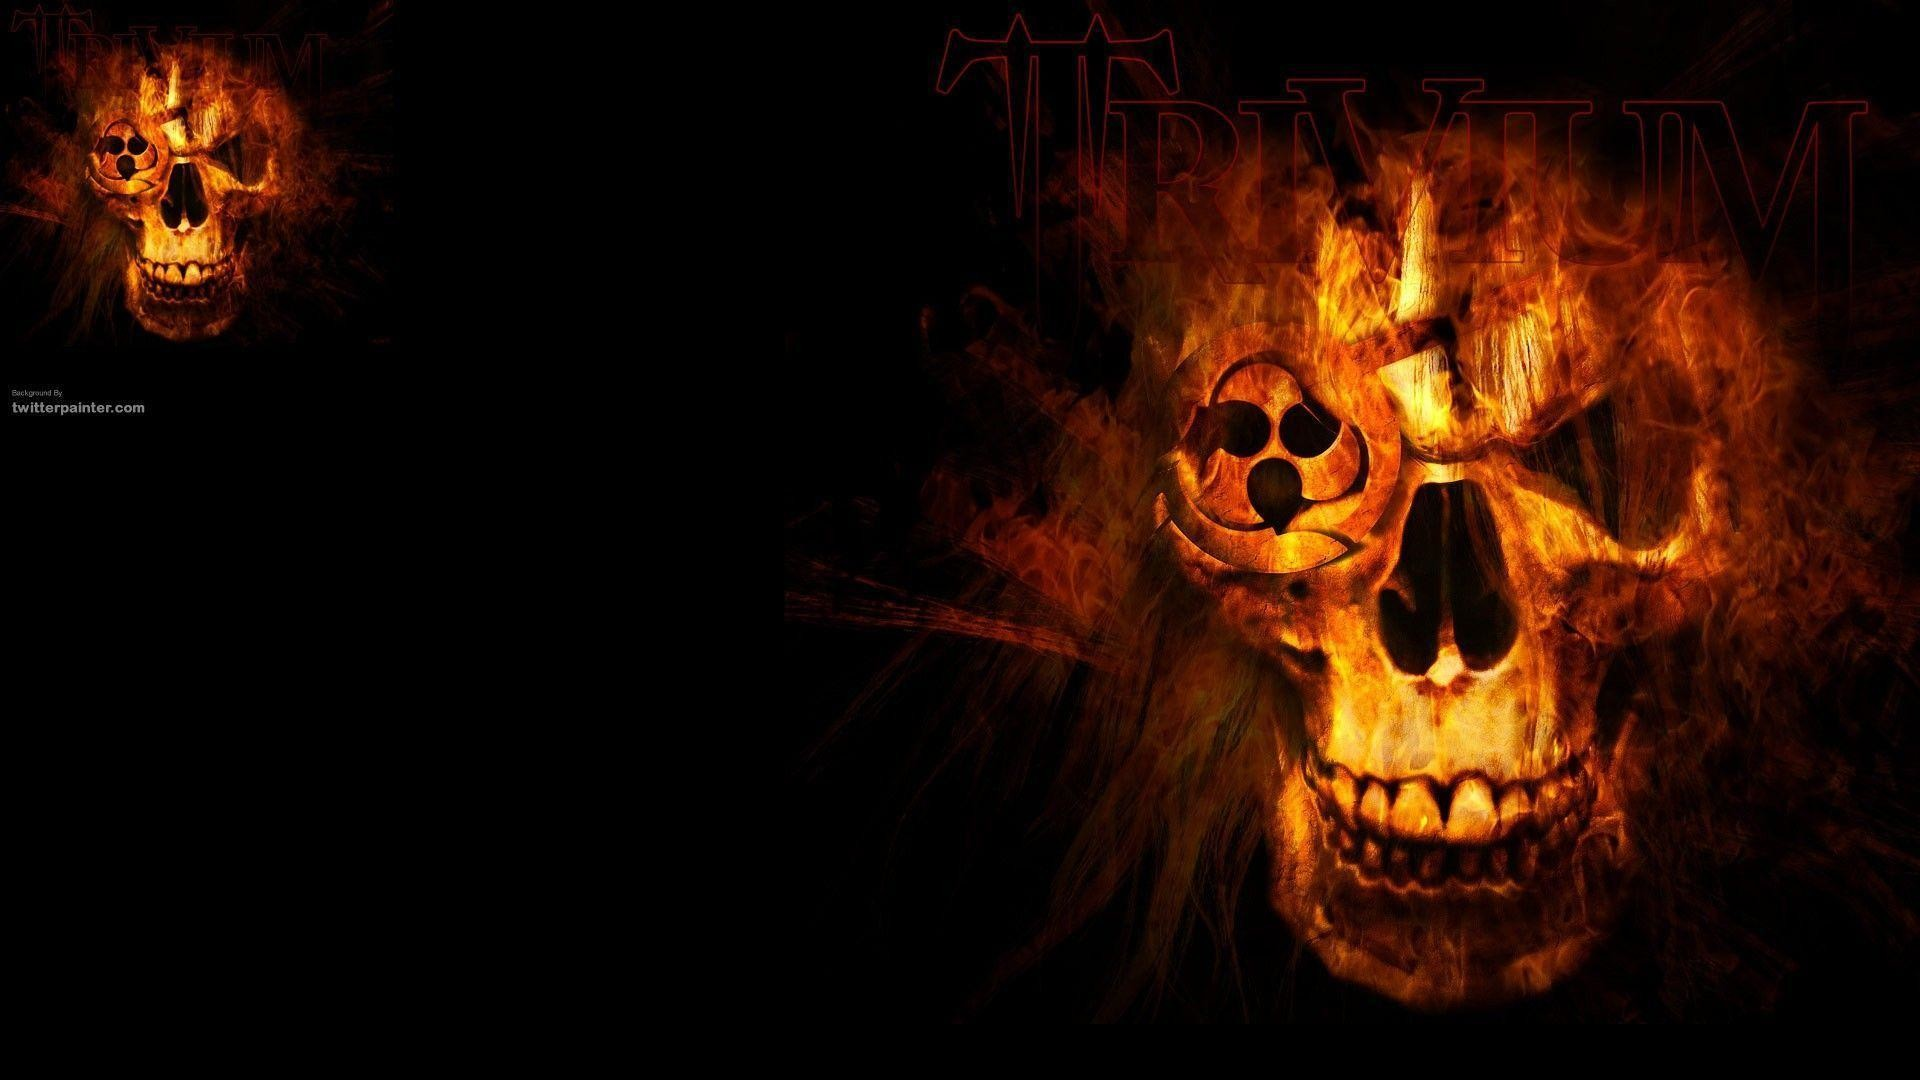 1920x1080 Wallpapers For > Red Fire Skull Wallpaper